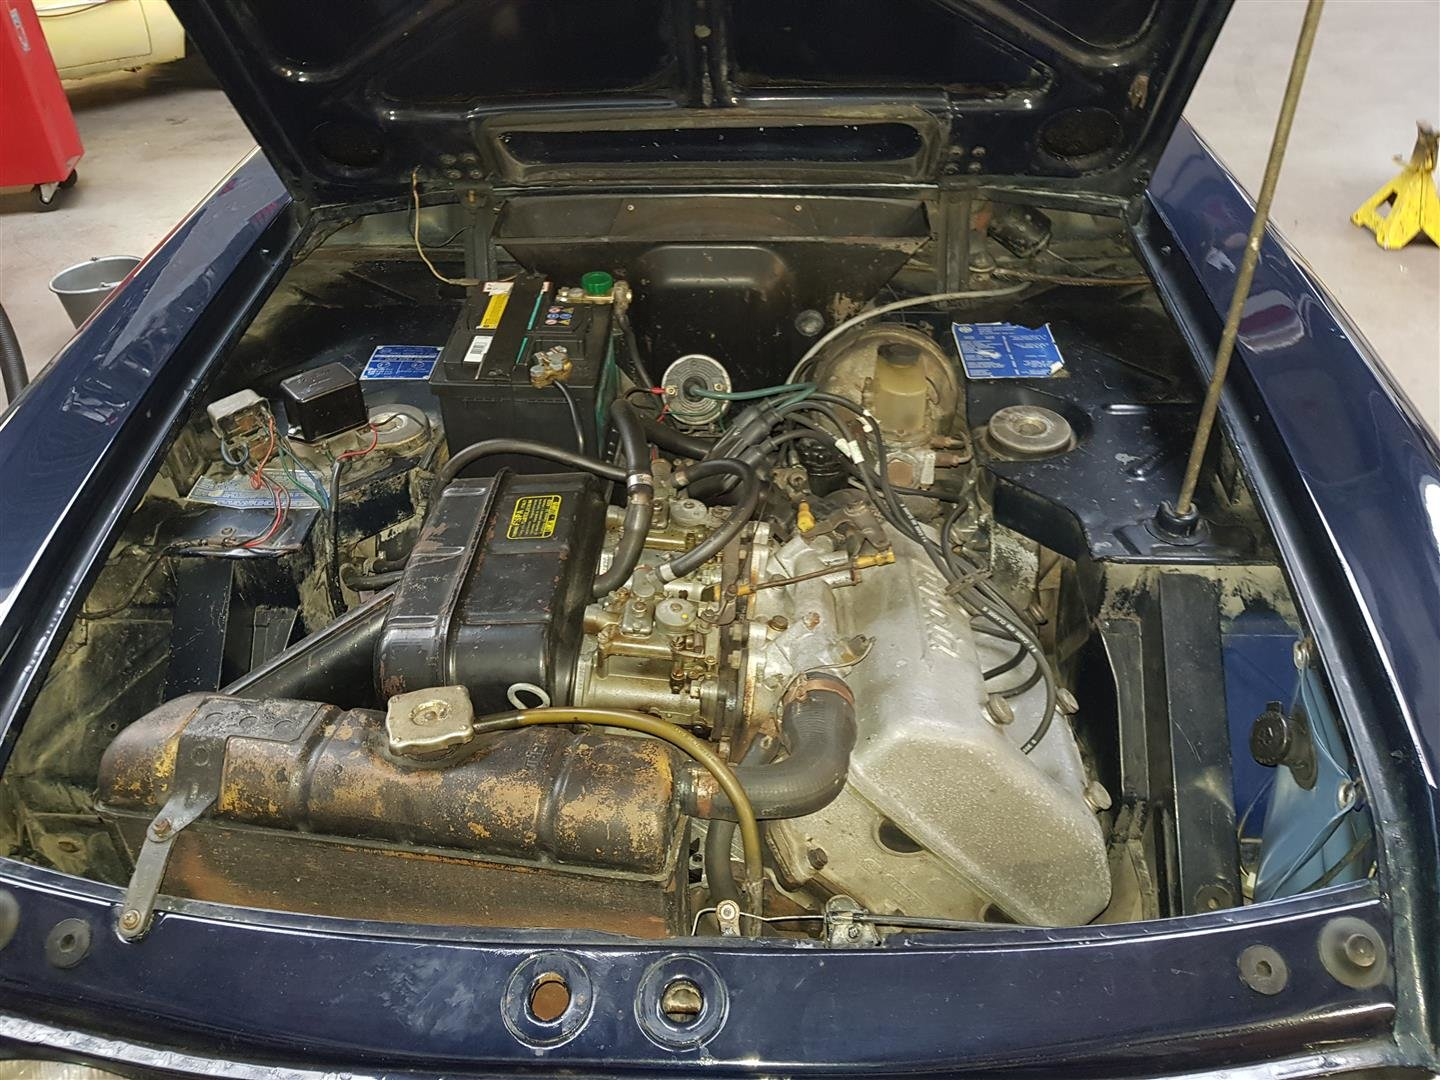 1974 Very nice Lancia Fulvia 1.3 S '74 For Sale (picture 5 of 6)